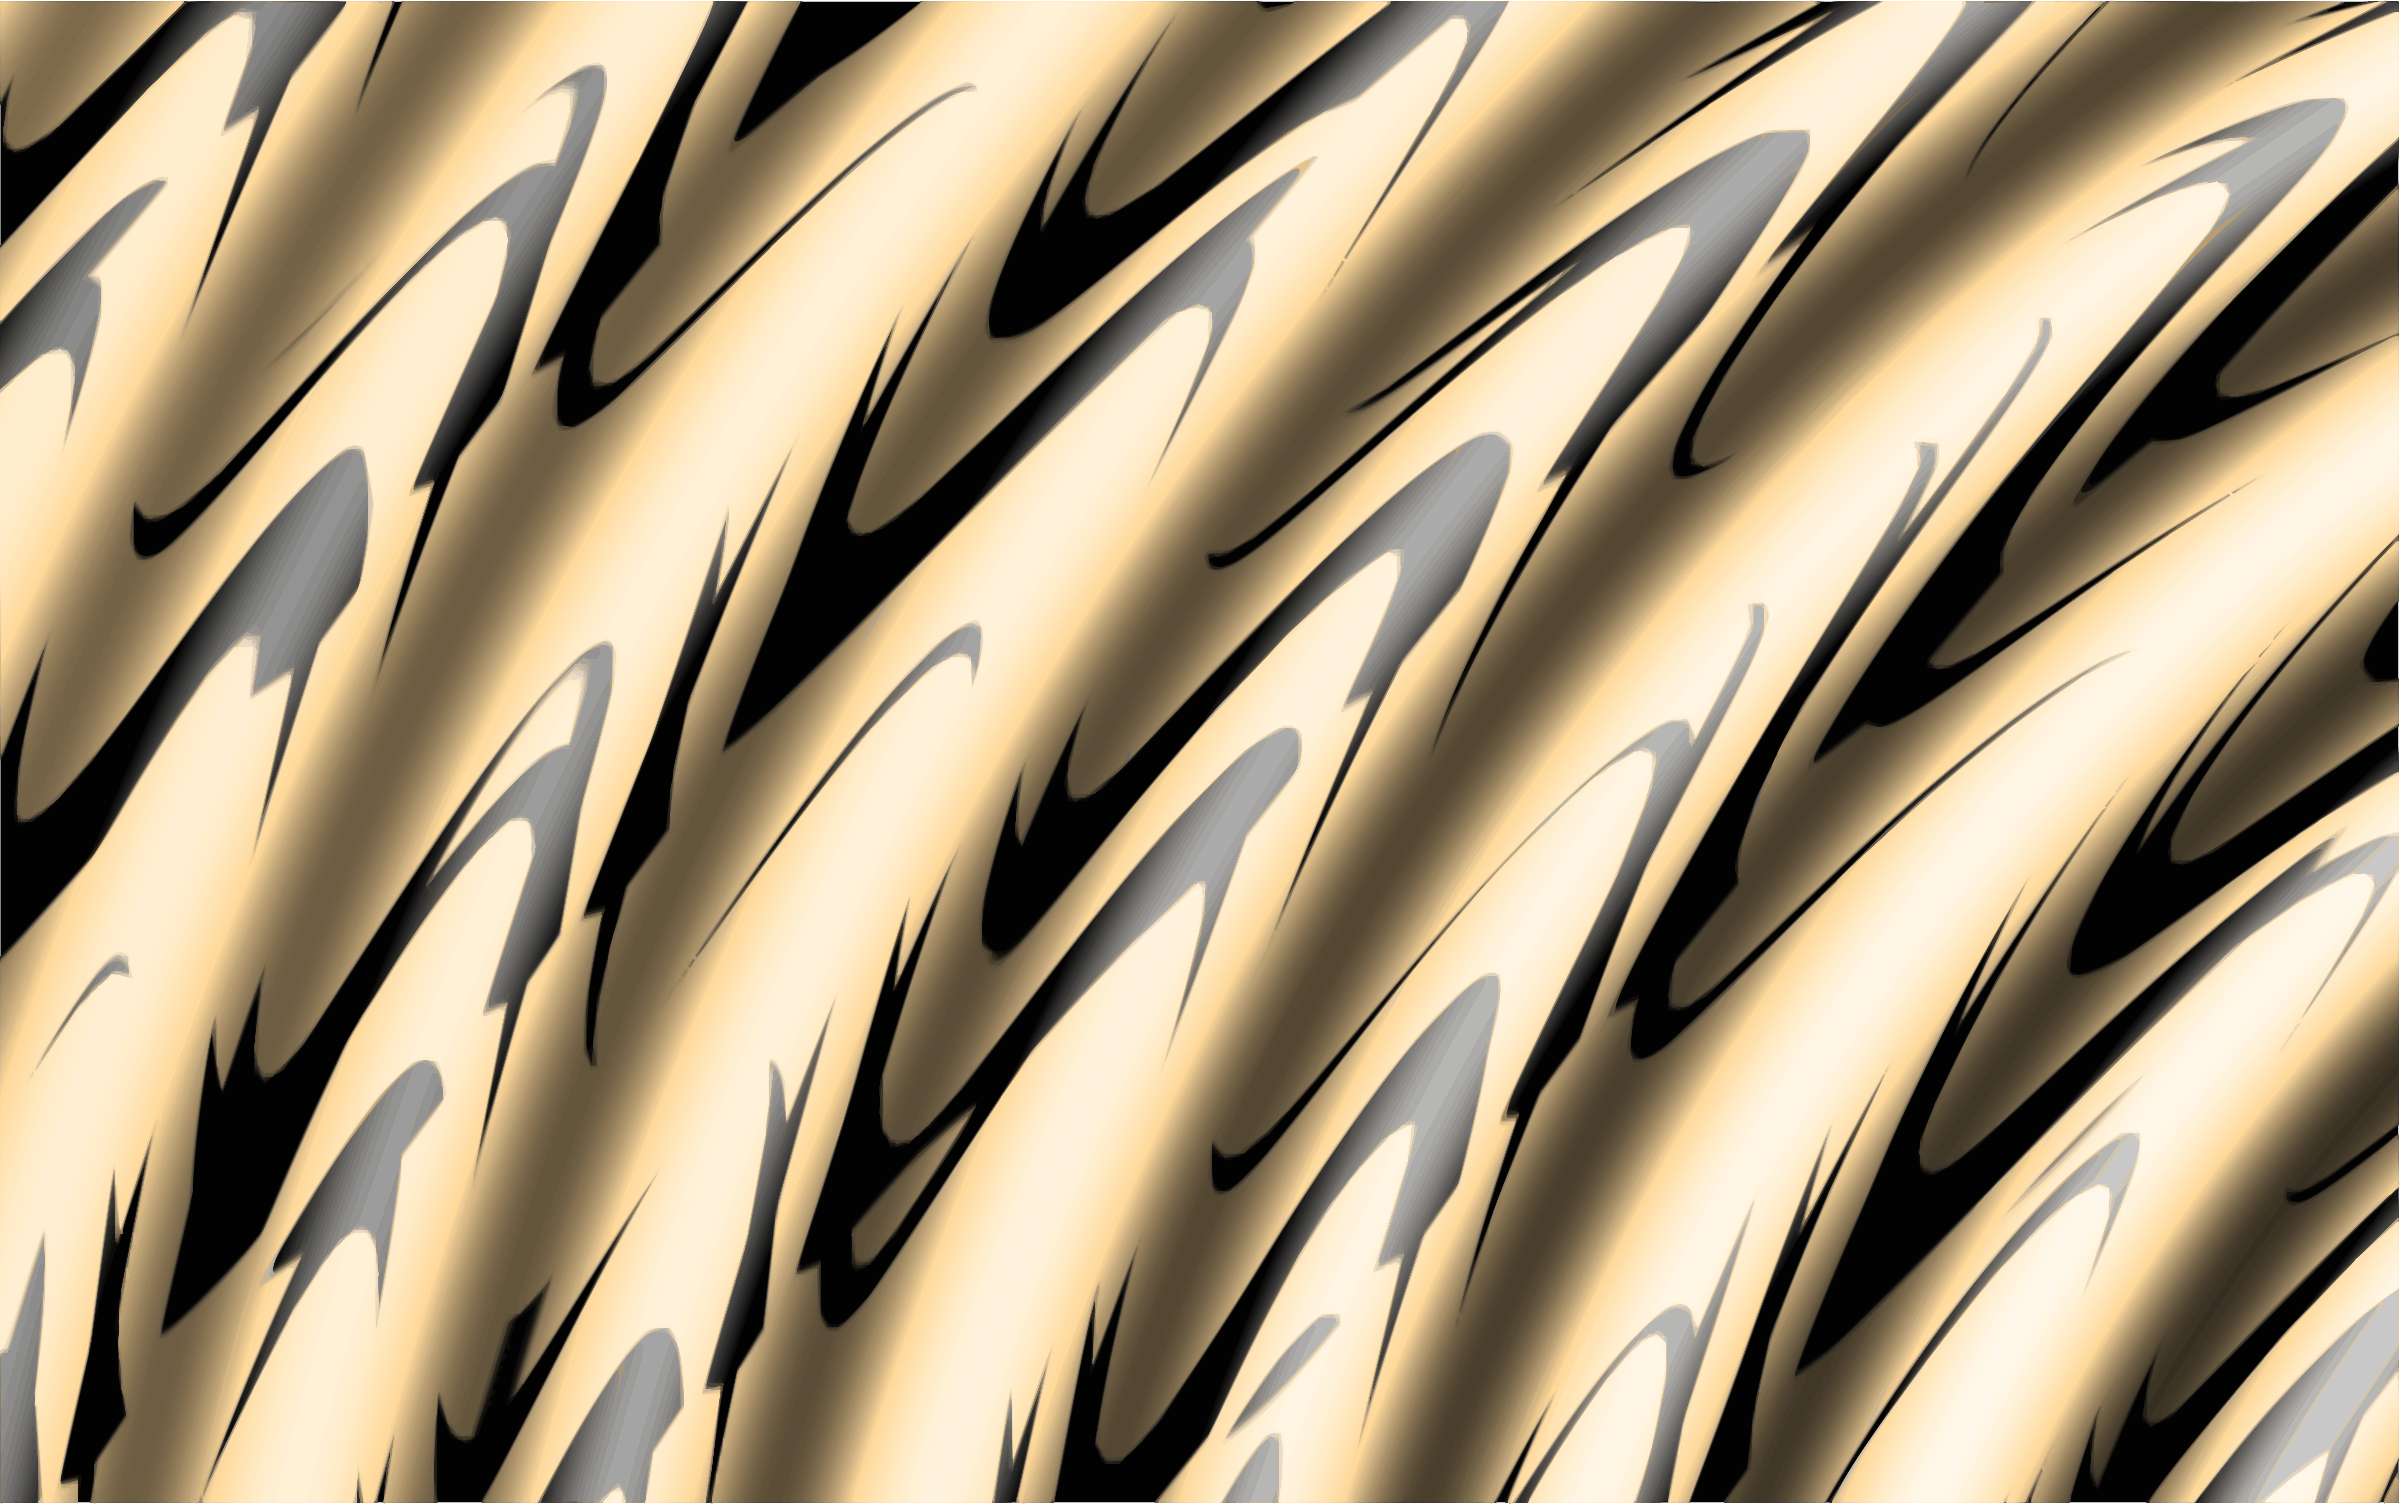 Background pattern 144 (colour 5) by Firkin